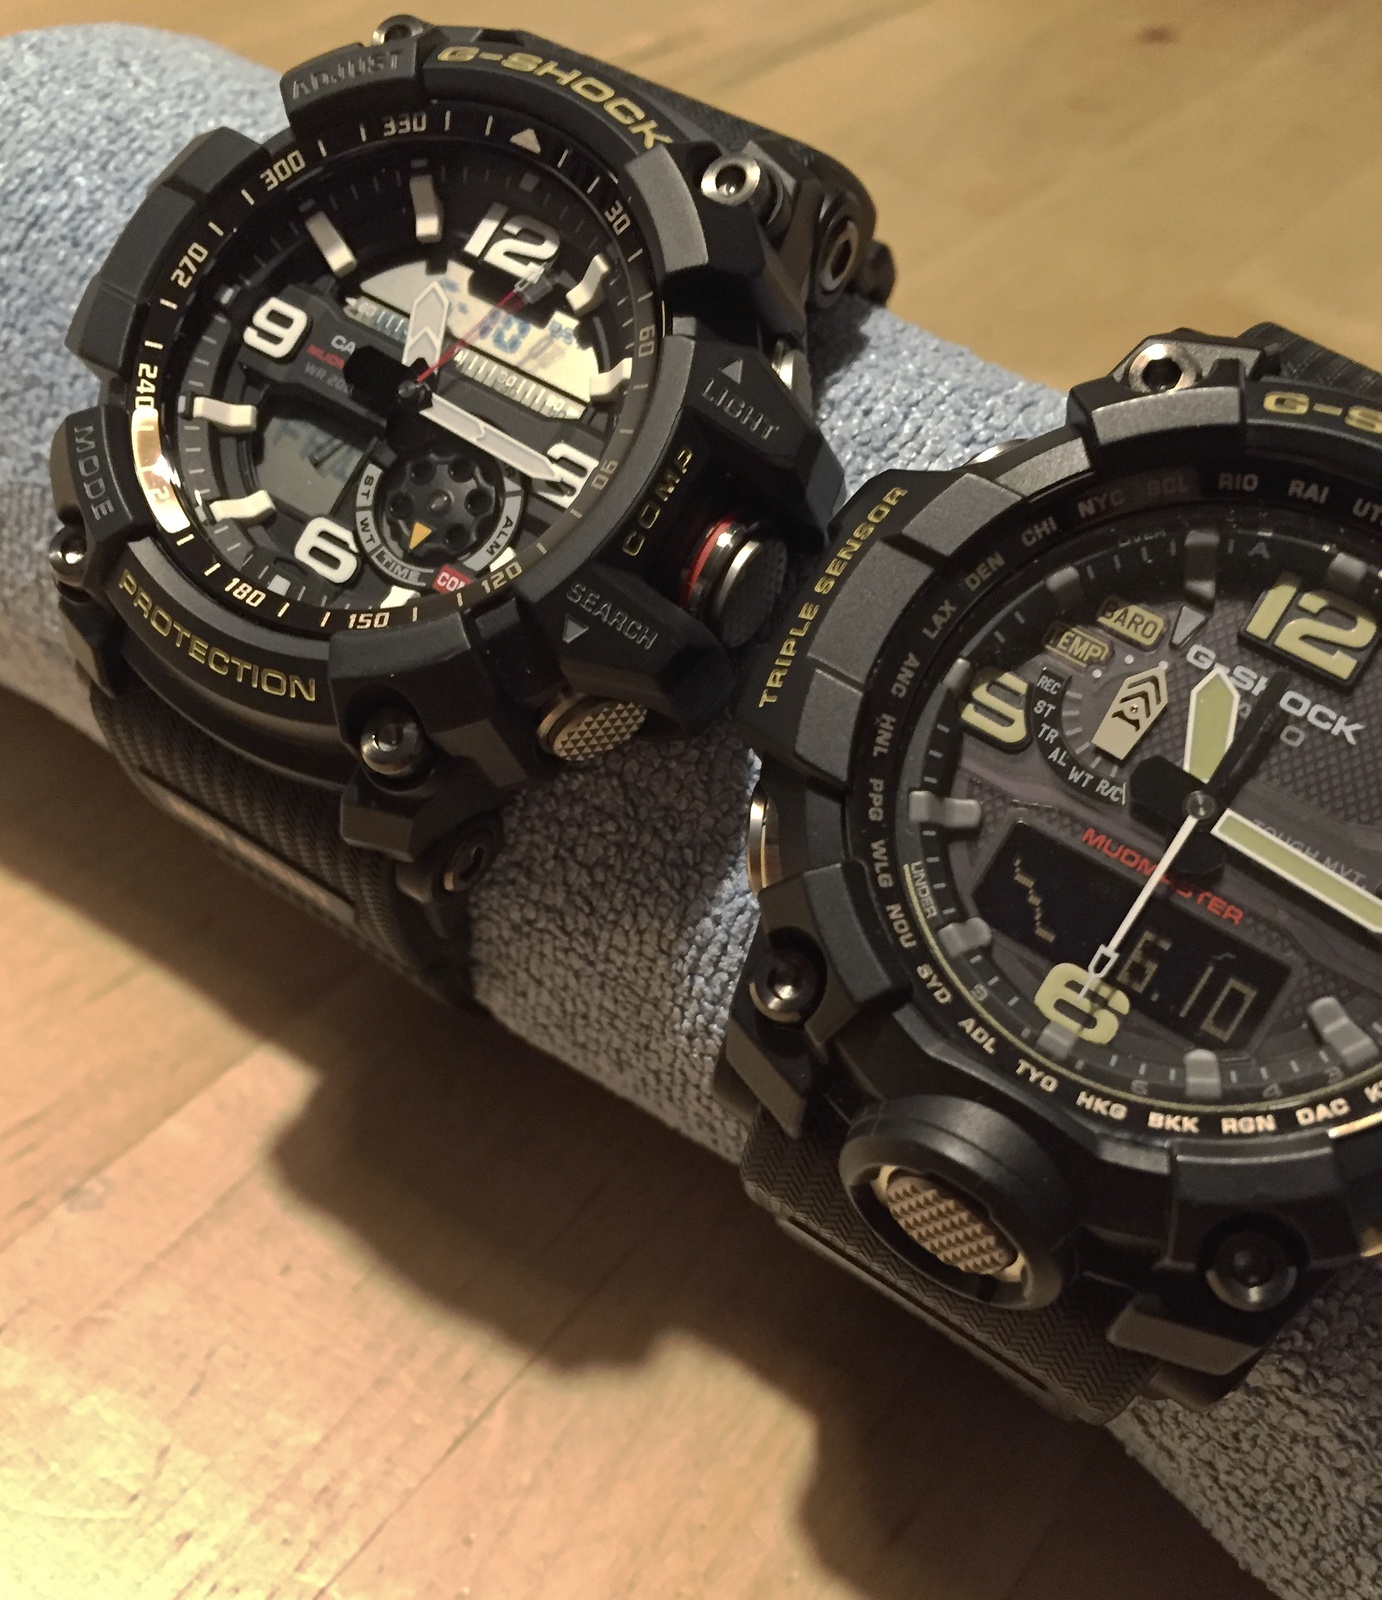 Casio G Shock Gwg 1000 Mudmaster 2015 Vs Gg Light 1a Img 2502